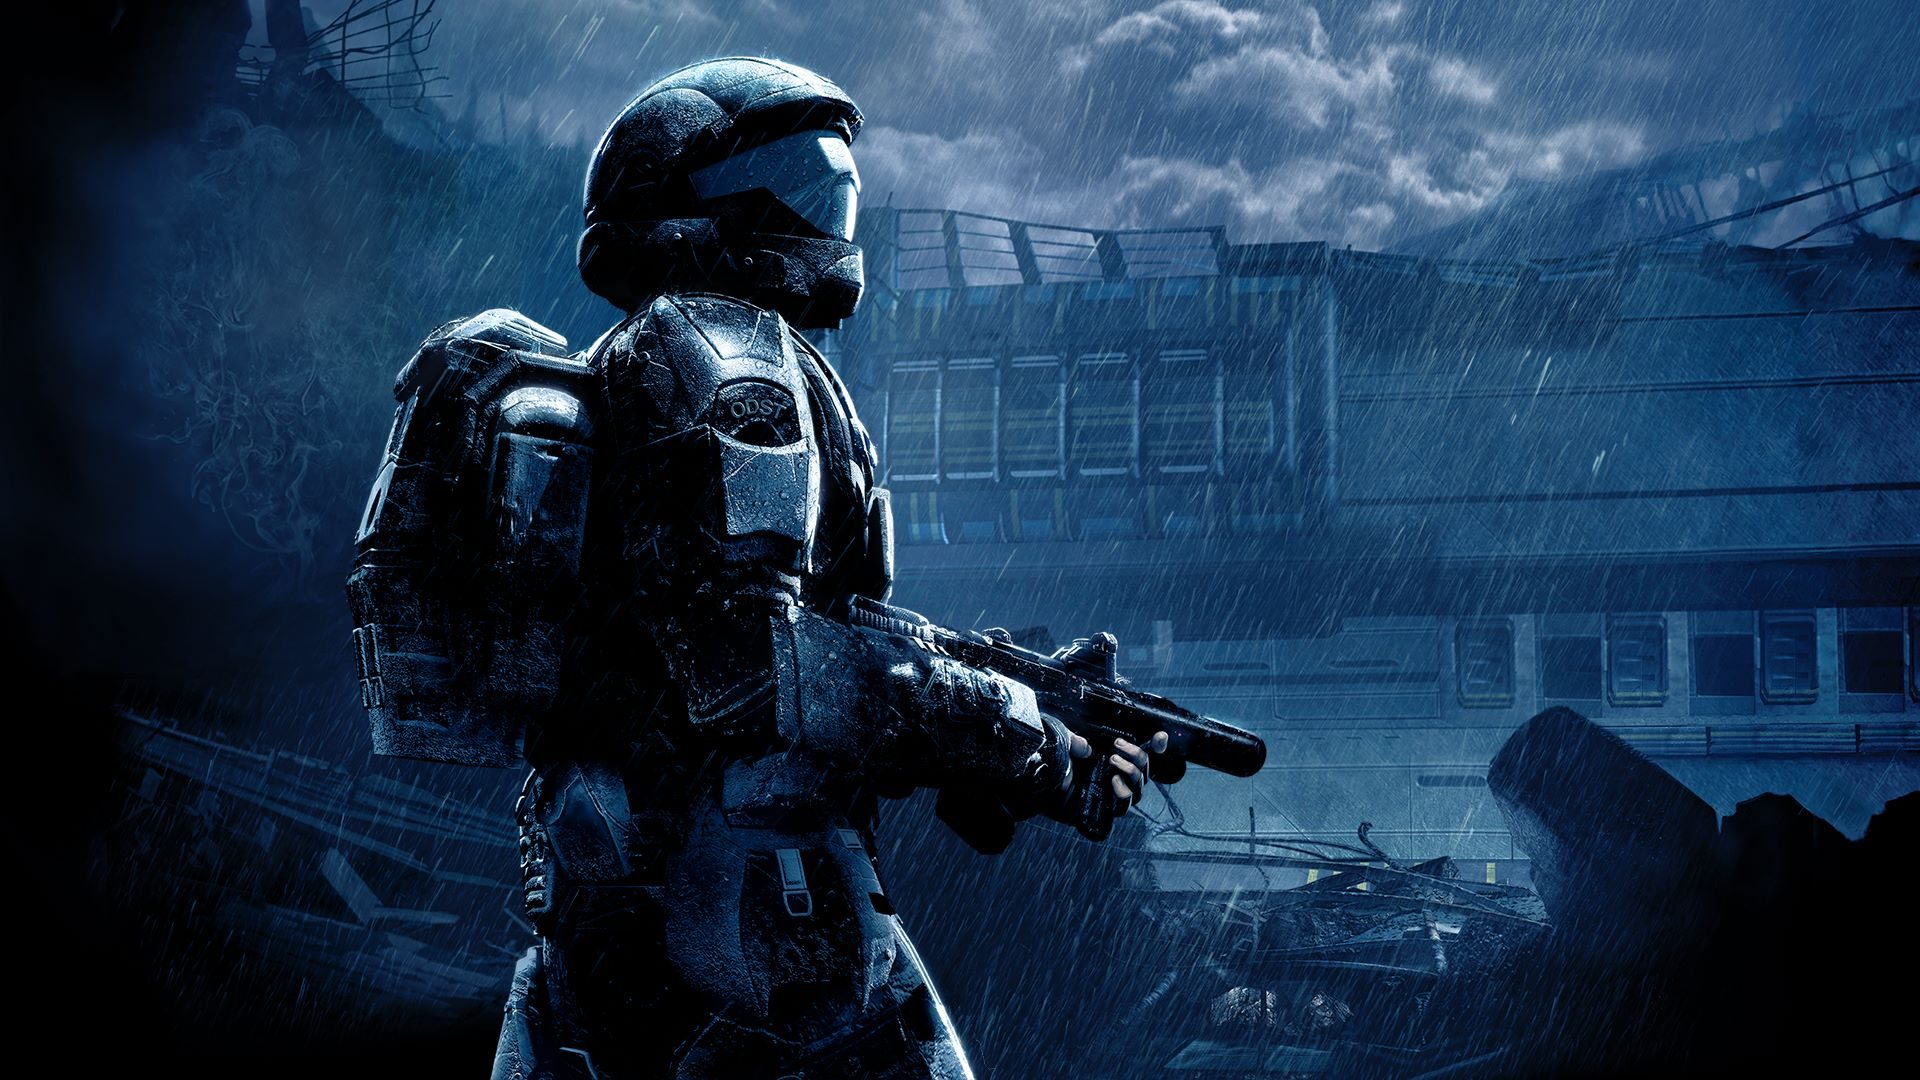 Halo 3 Odst Hd Wallpapers 33 Images Dodowallpaper